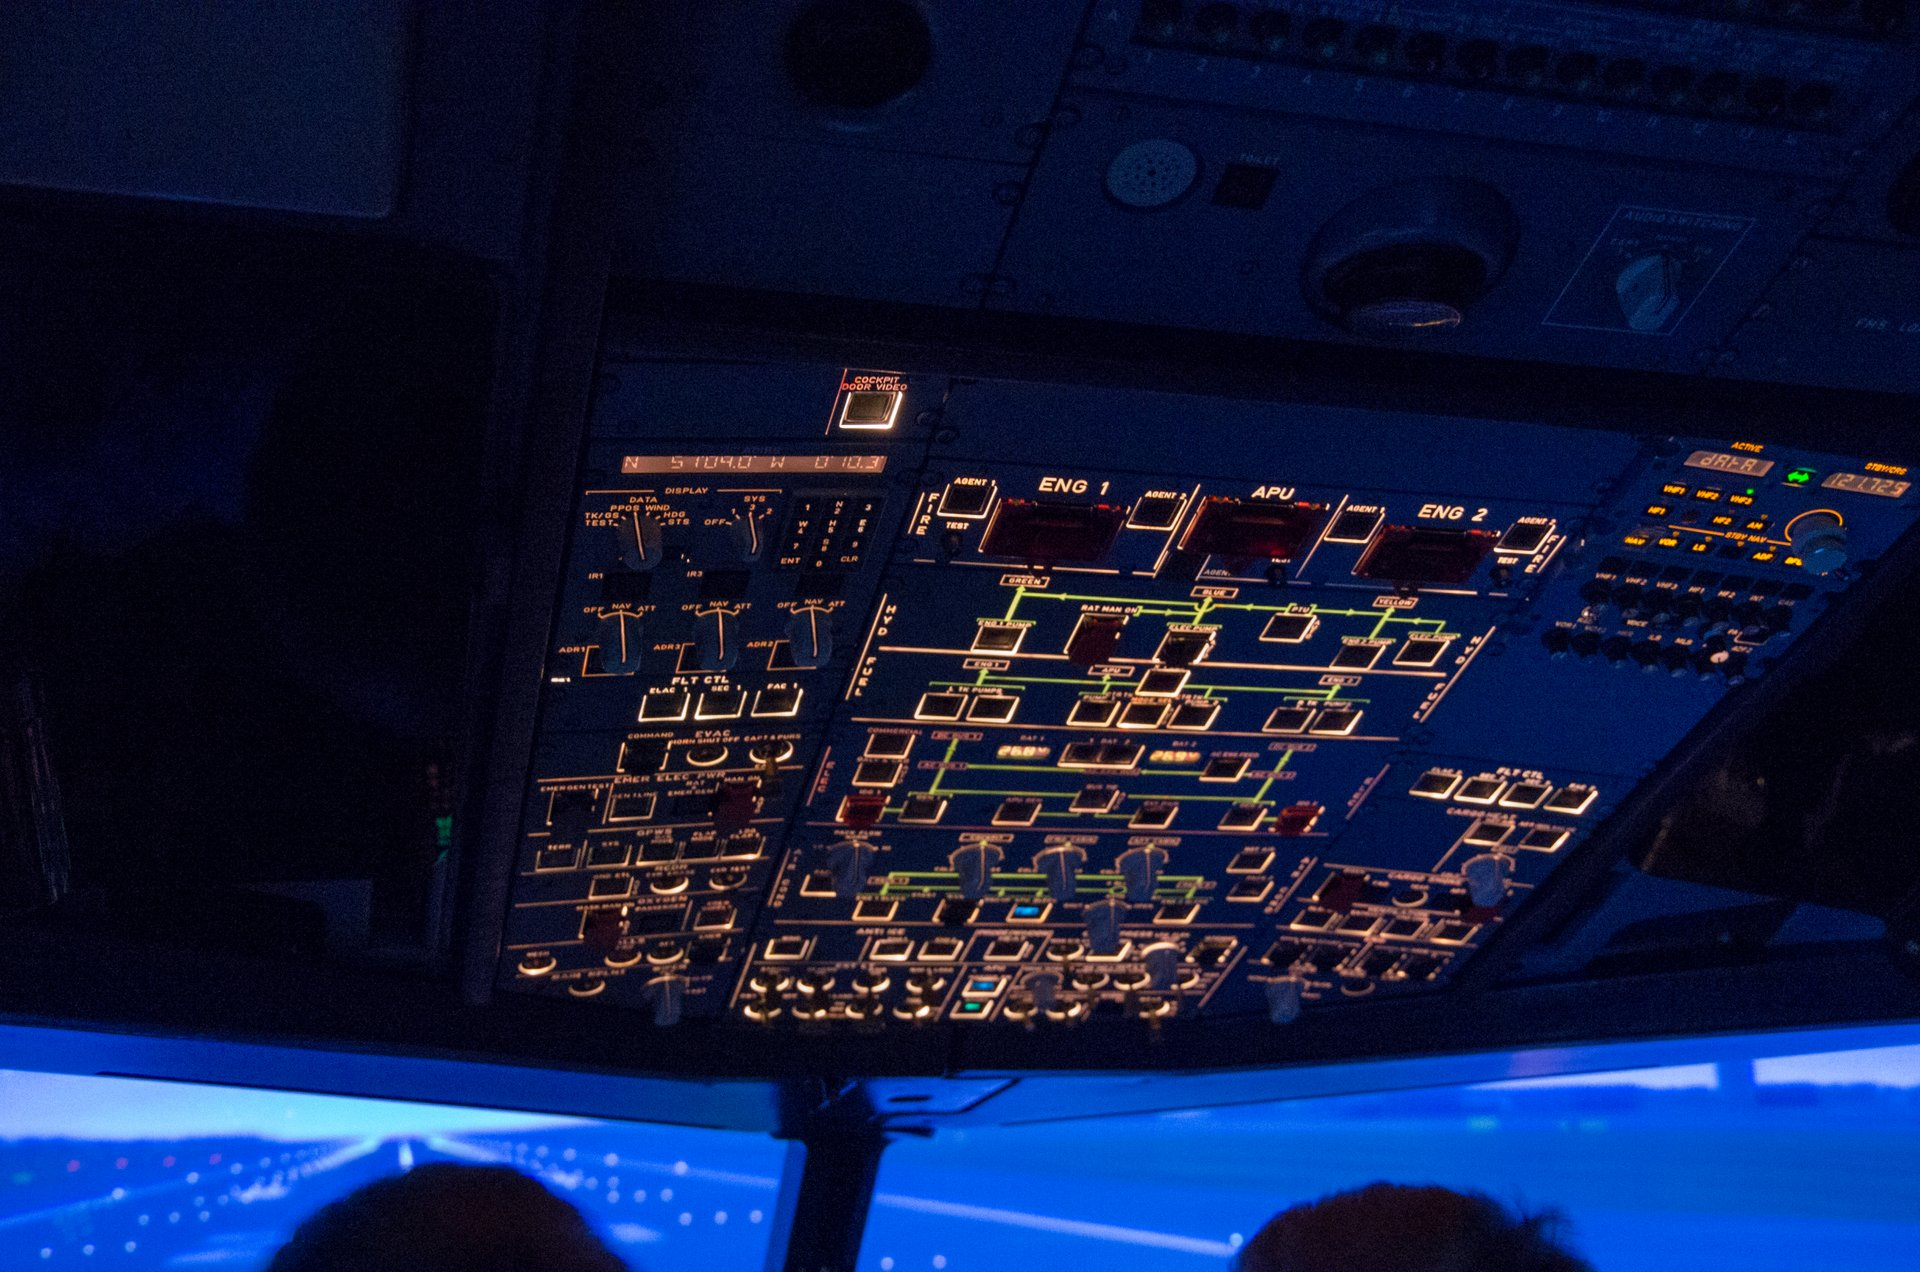 Overhead panel shot as we line up on runway 26L at Gatwick (EGKK)